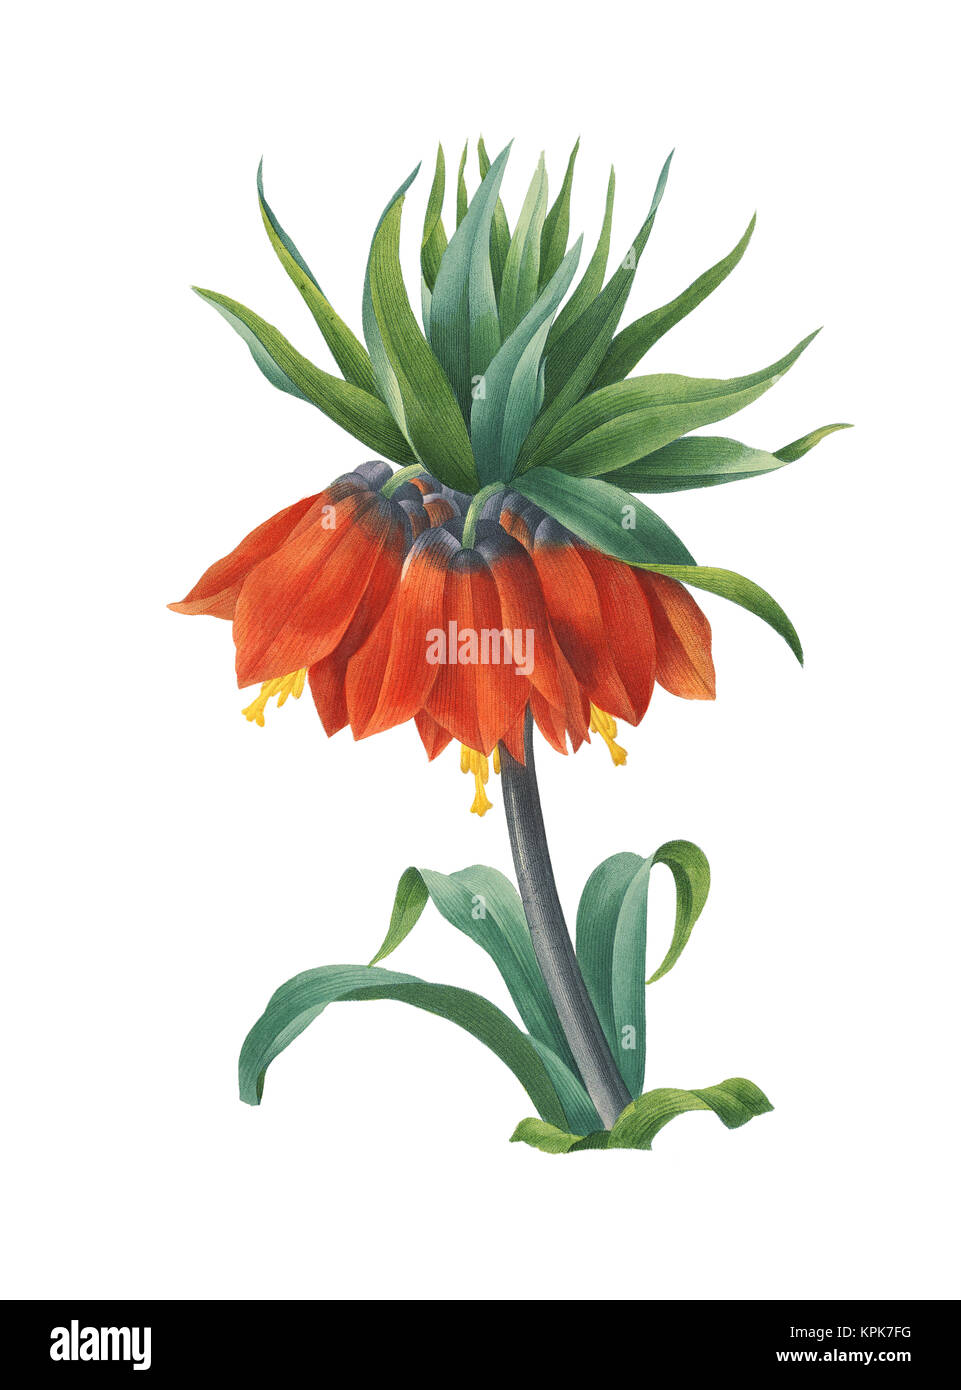 Vintage illustration of a Fritillaria imperialis also known as Crown imperial or Kaiser's crown. Engraving by - Stock Image